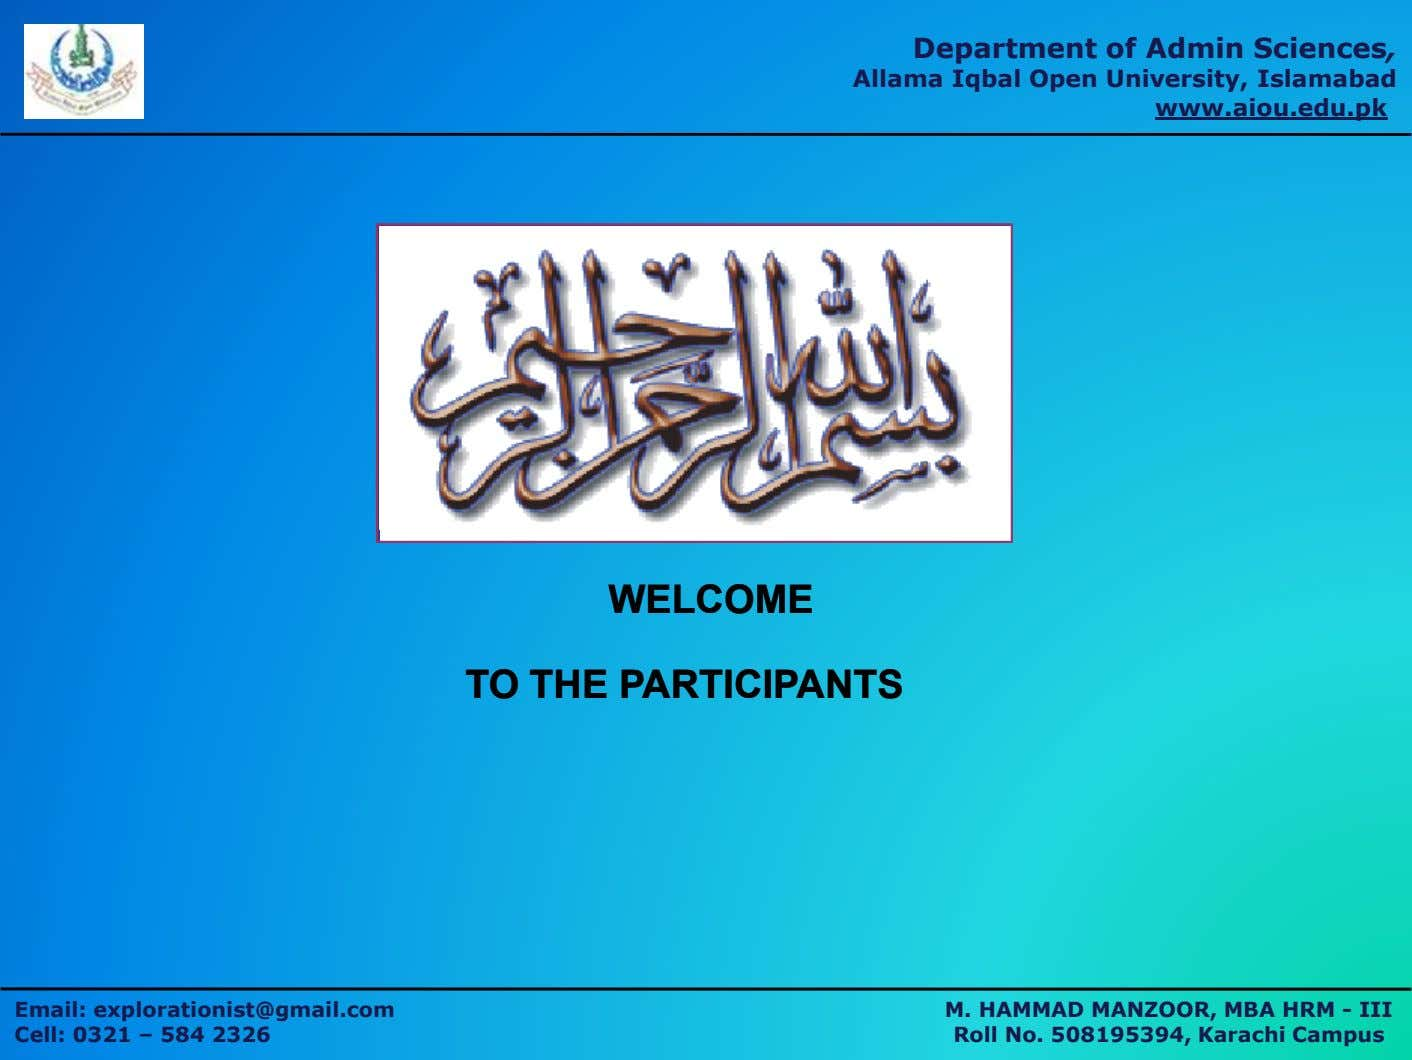 Department of Admin Sciences, Allama Iqbal Open University, Islamabad www.aiou.edu.pk WELCOMEWELCOME TOTO THETHE